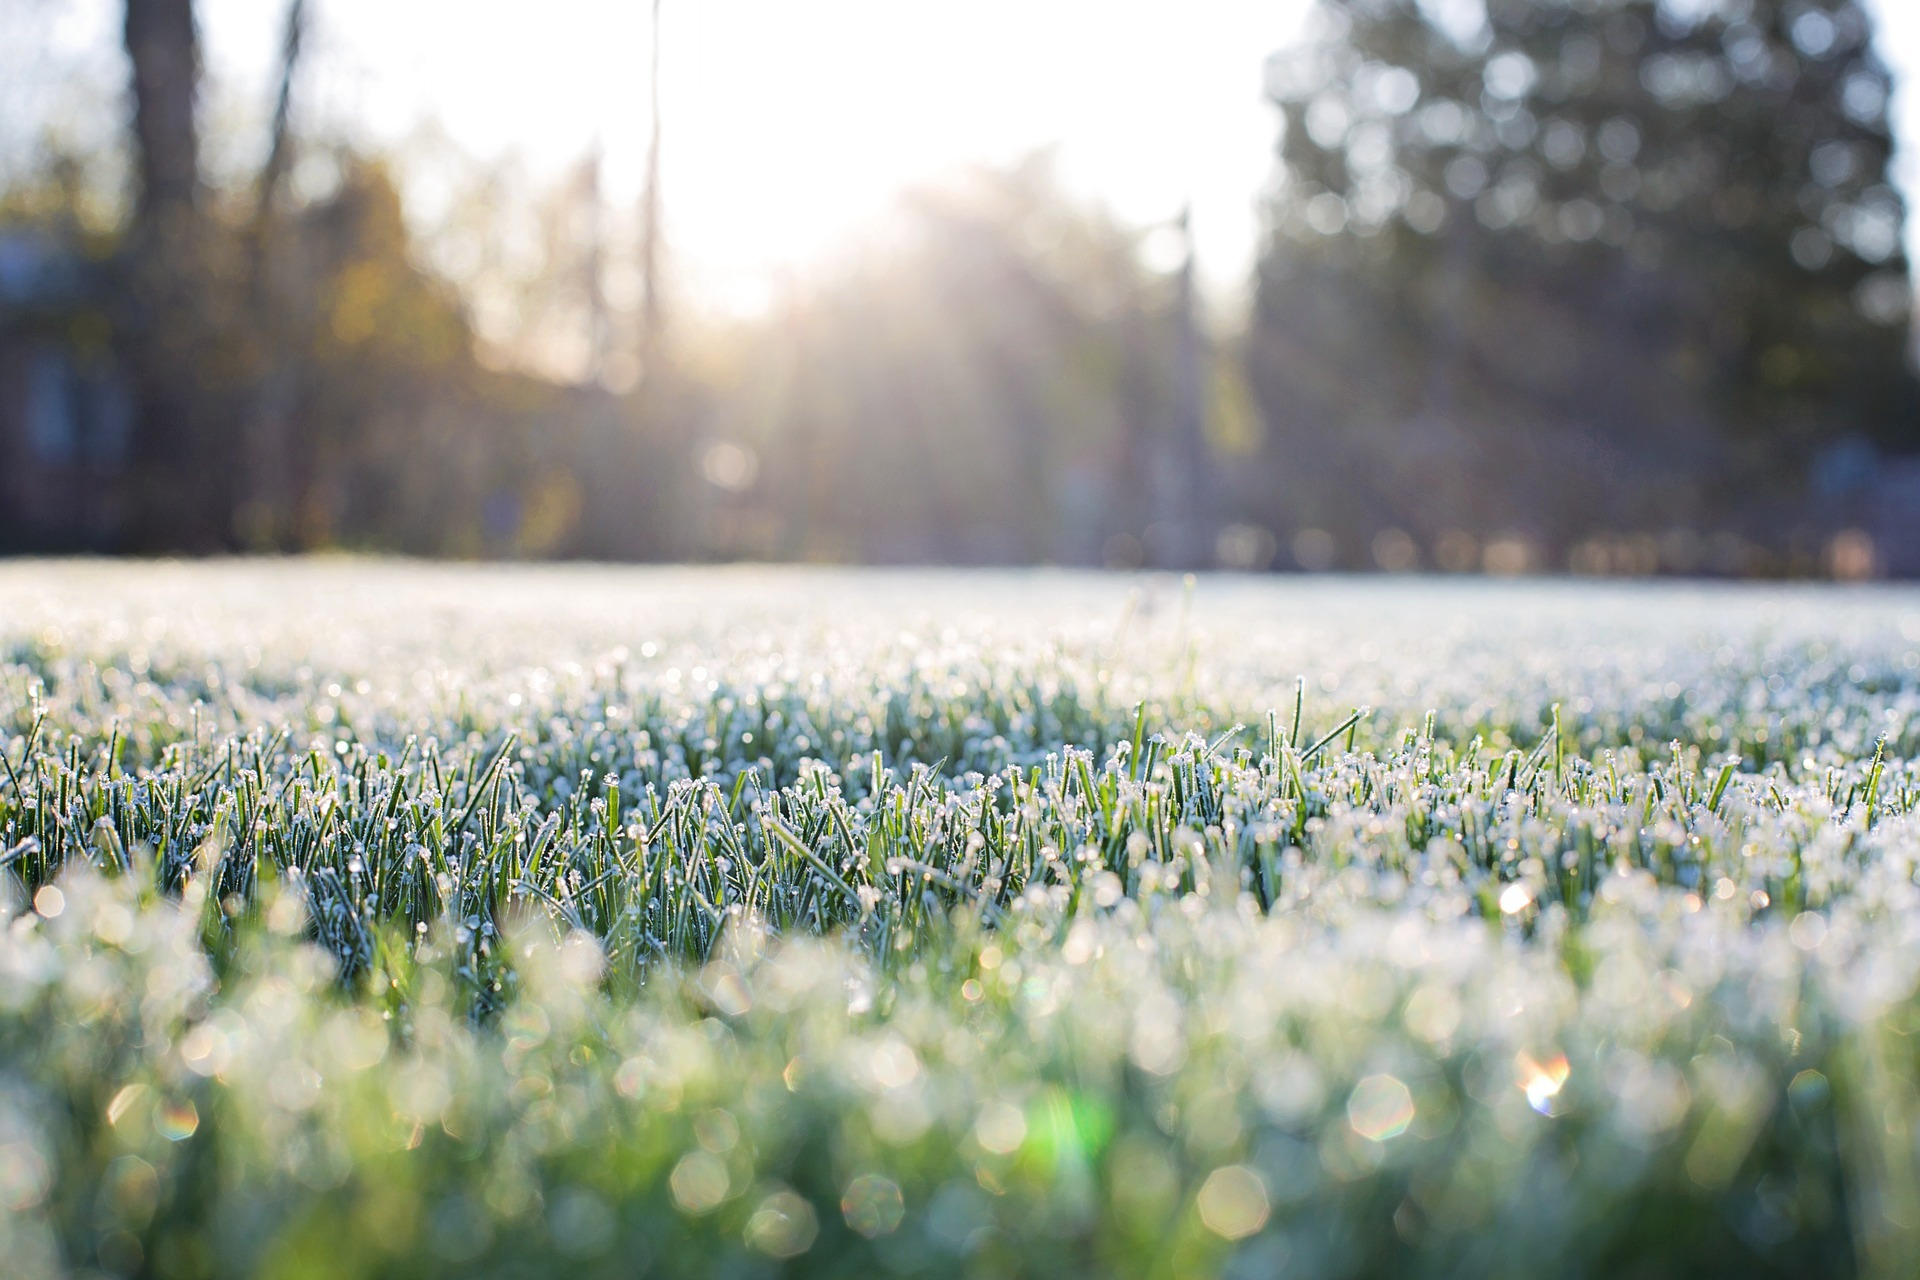 Cold weather causes slower germination